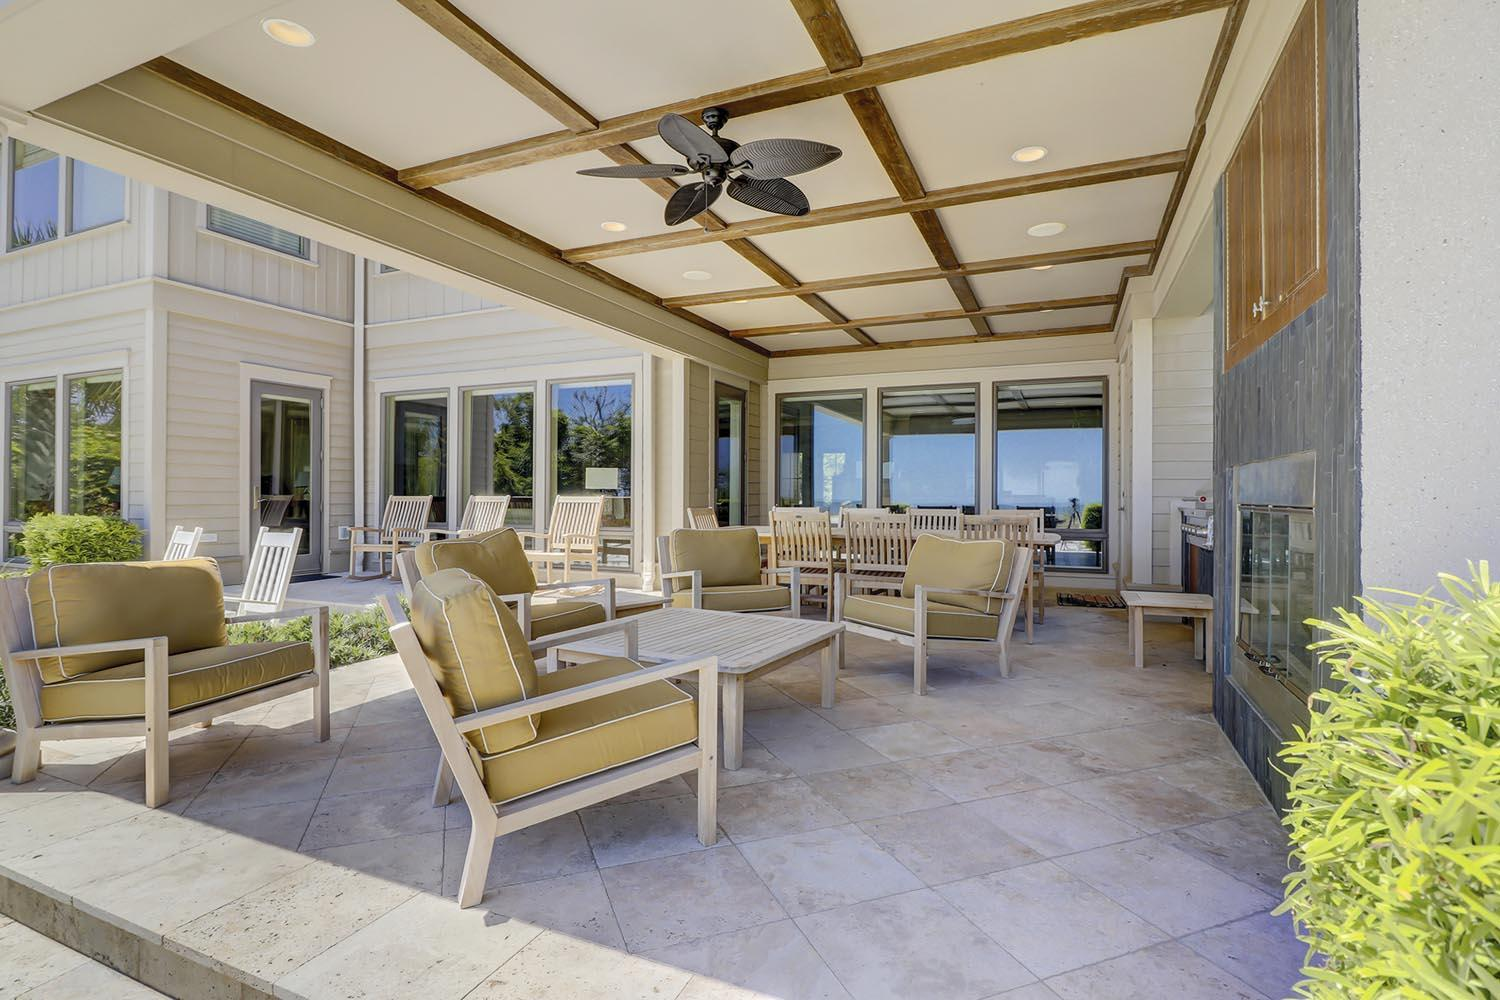 Covered Patio and Grill Area | Endless Summer